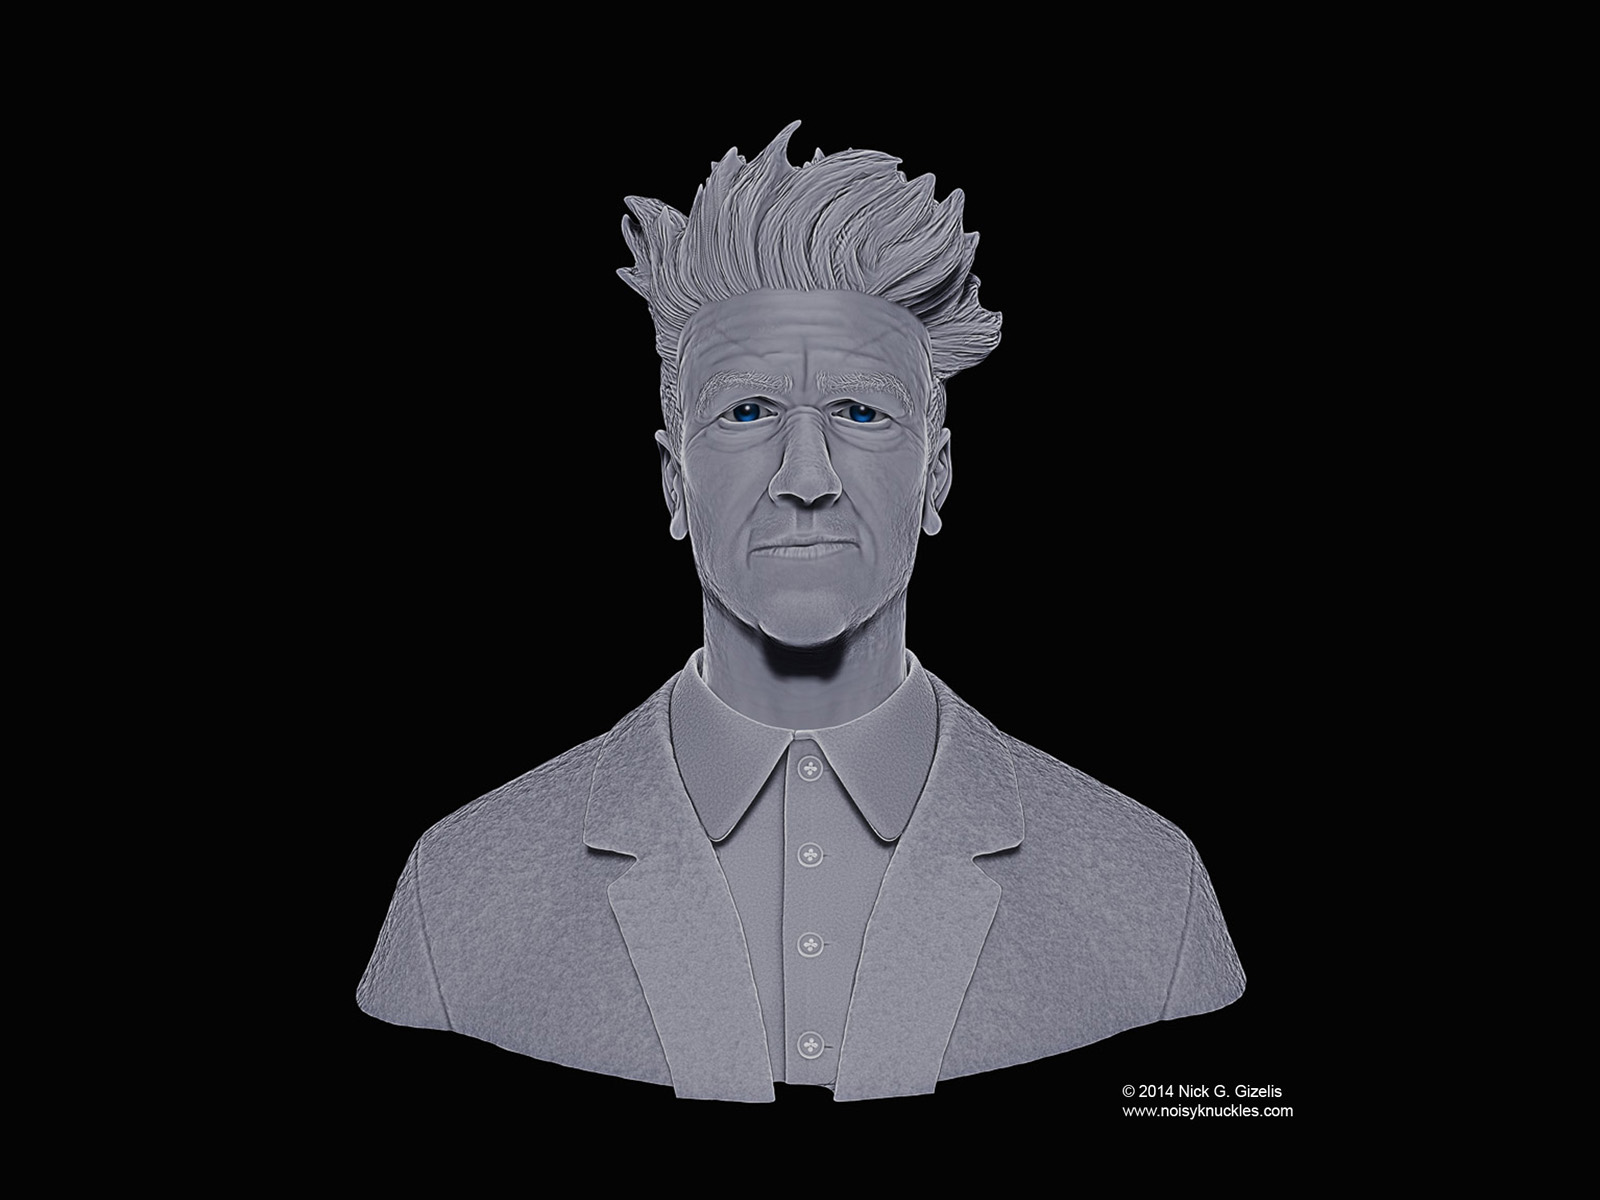 nick-gizelis_david_bust_01